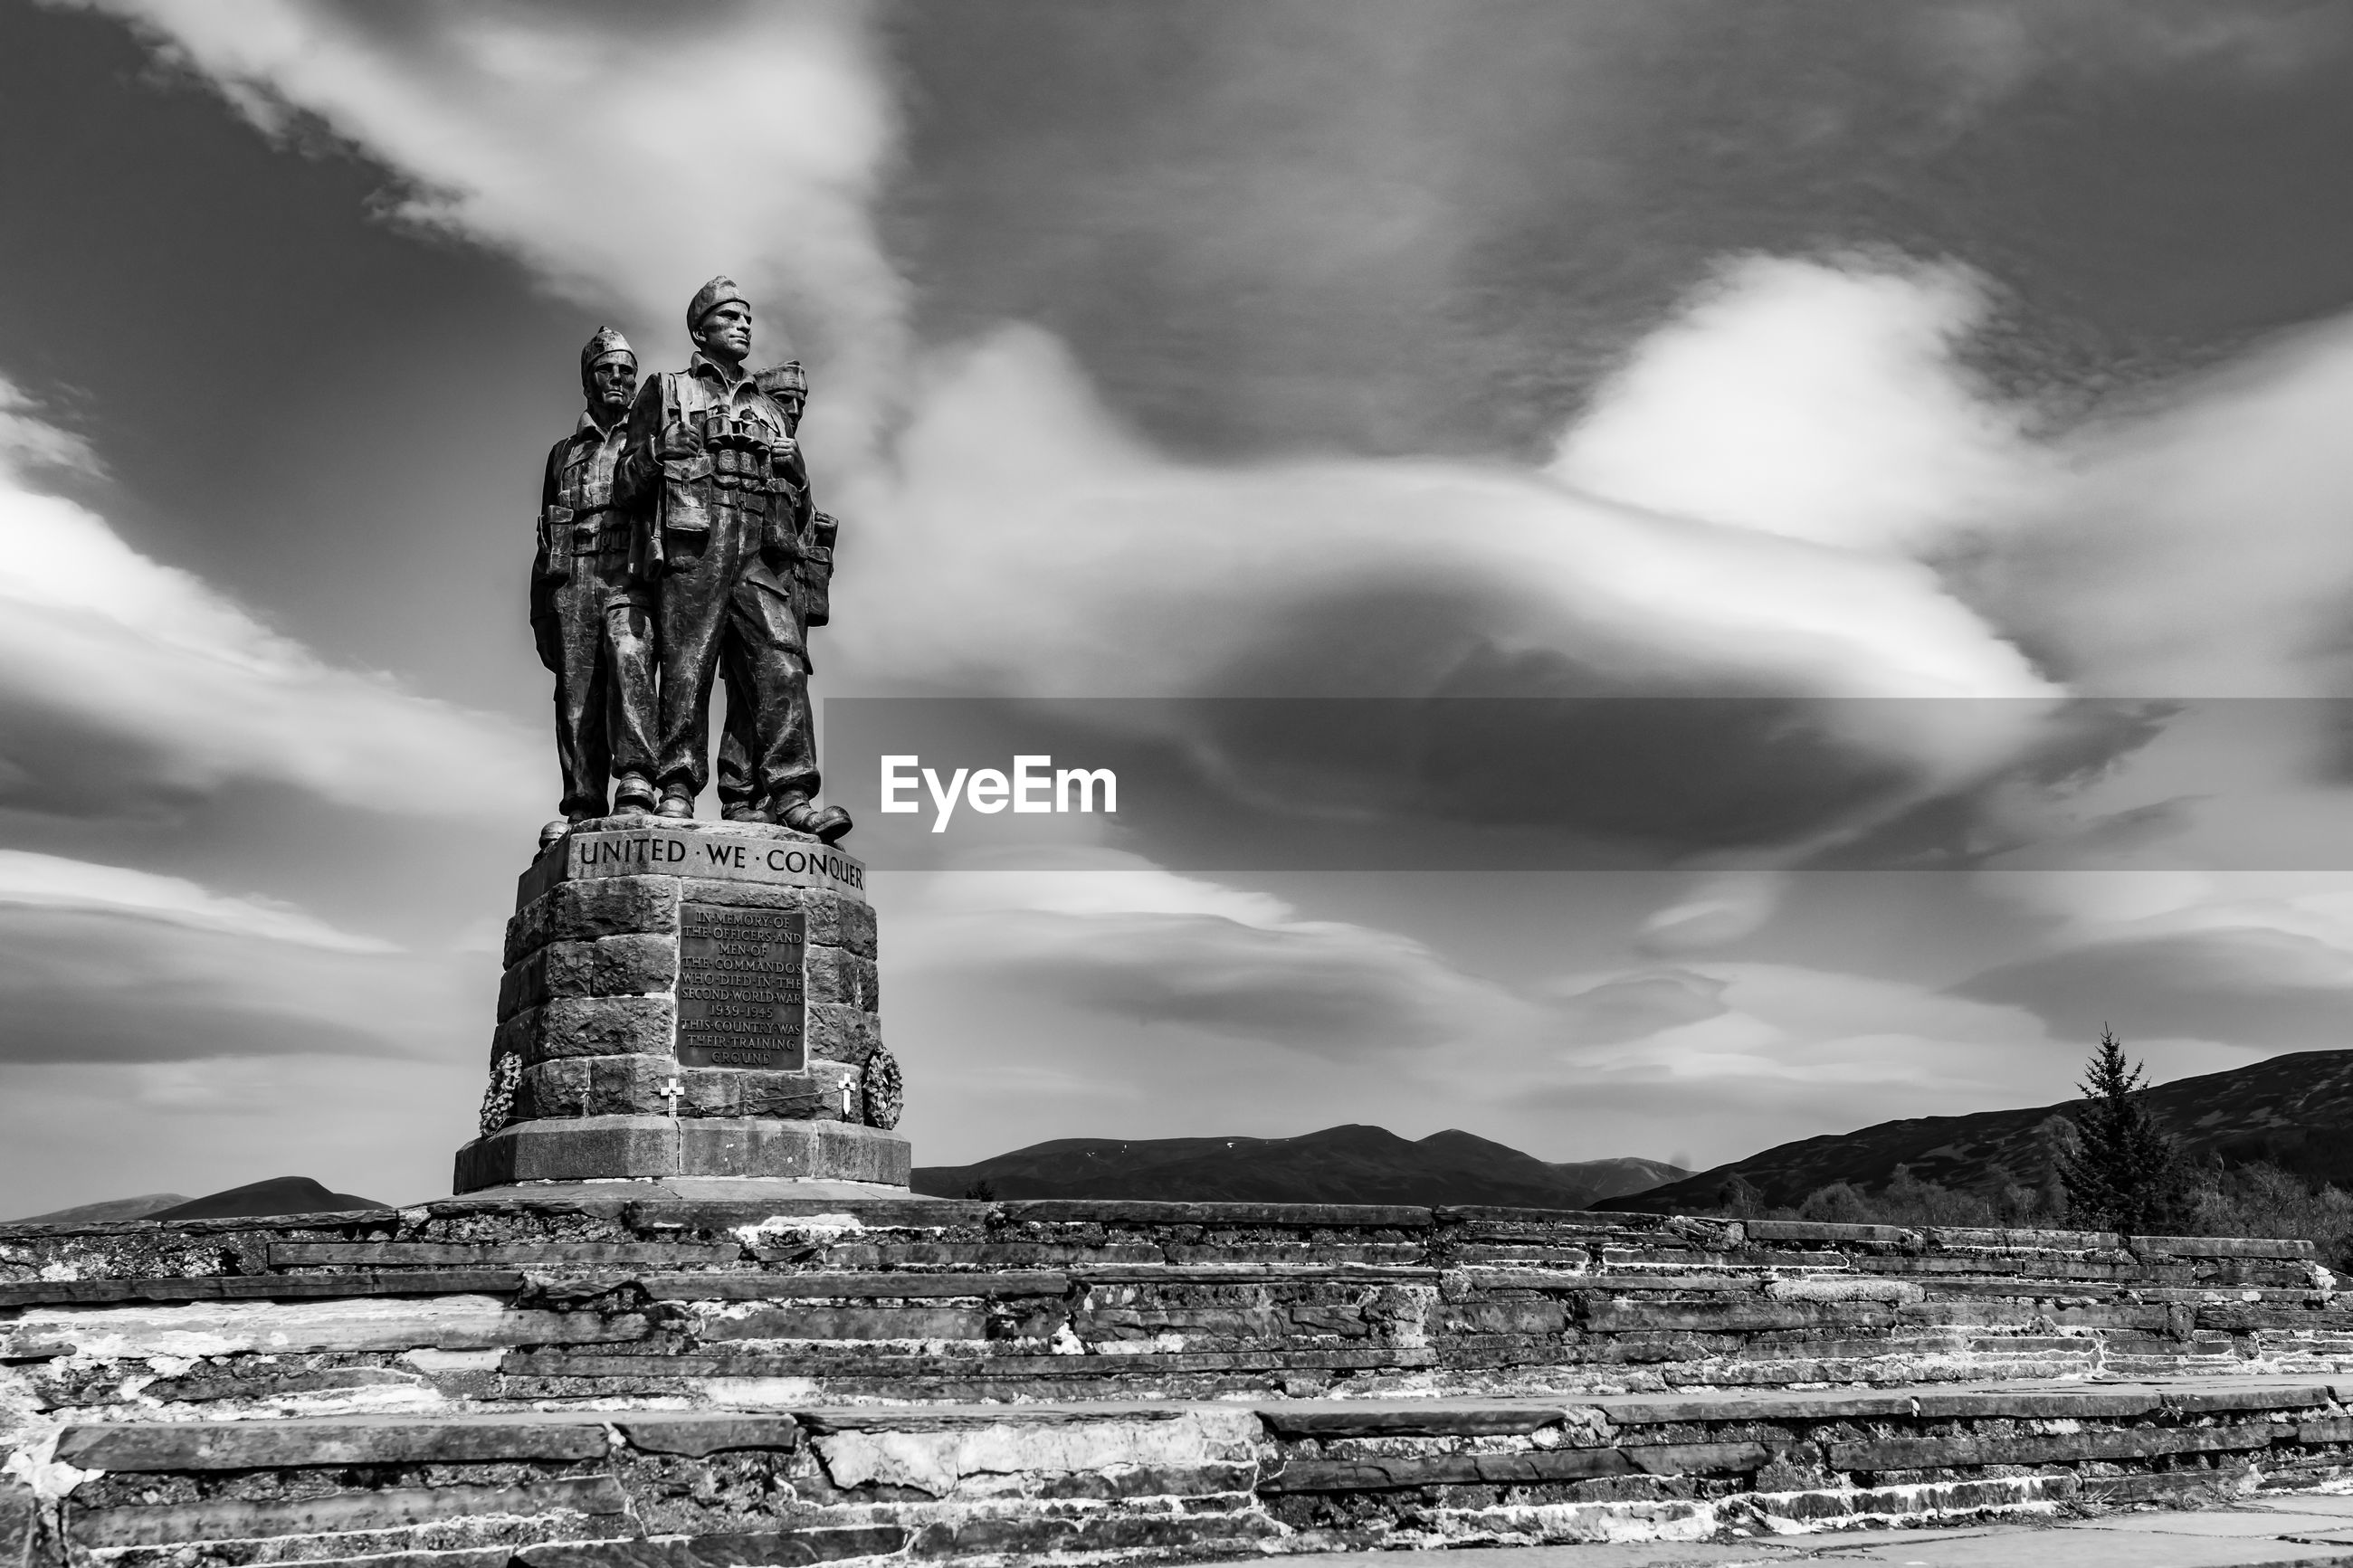 Commando memorial in black white